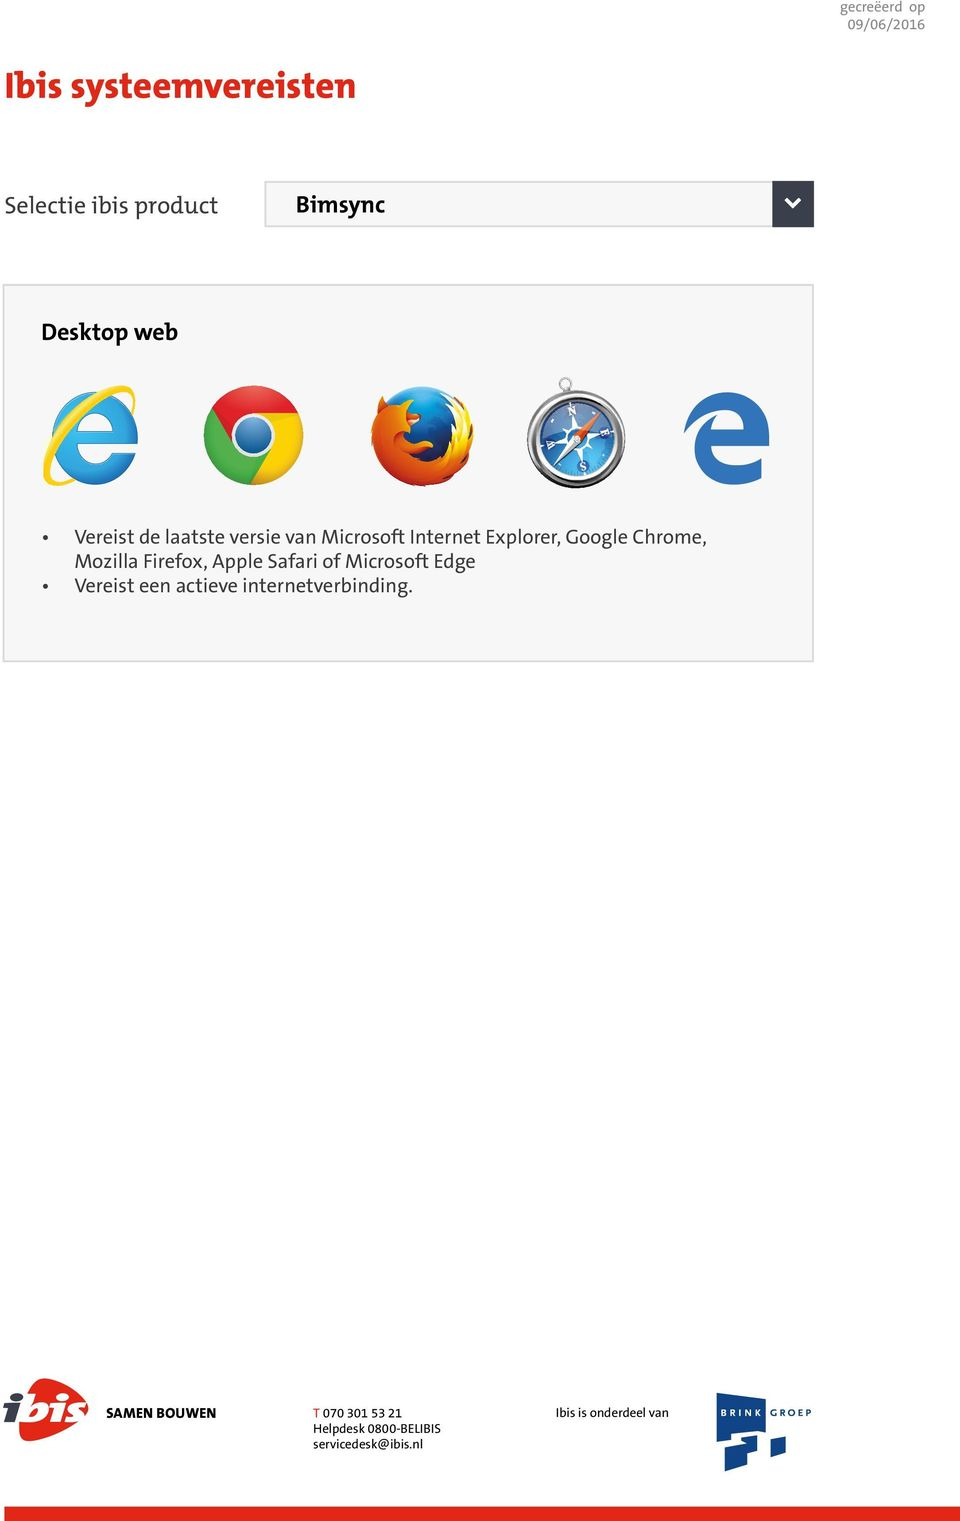 Google Chrome, Mozilla Firefox, Apple Safari of